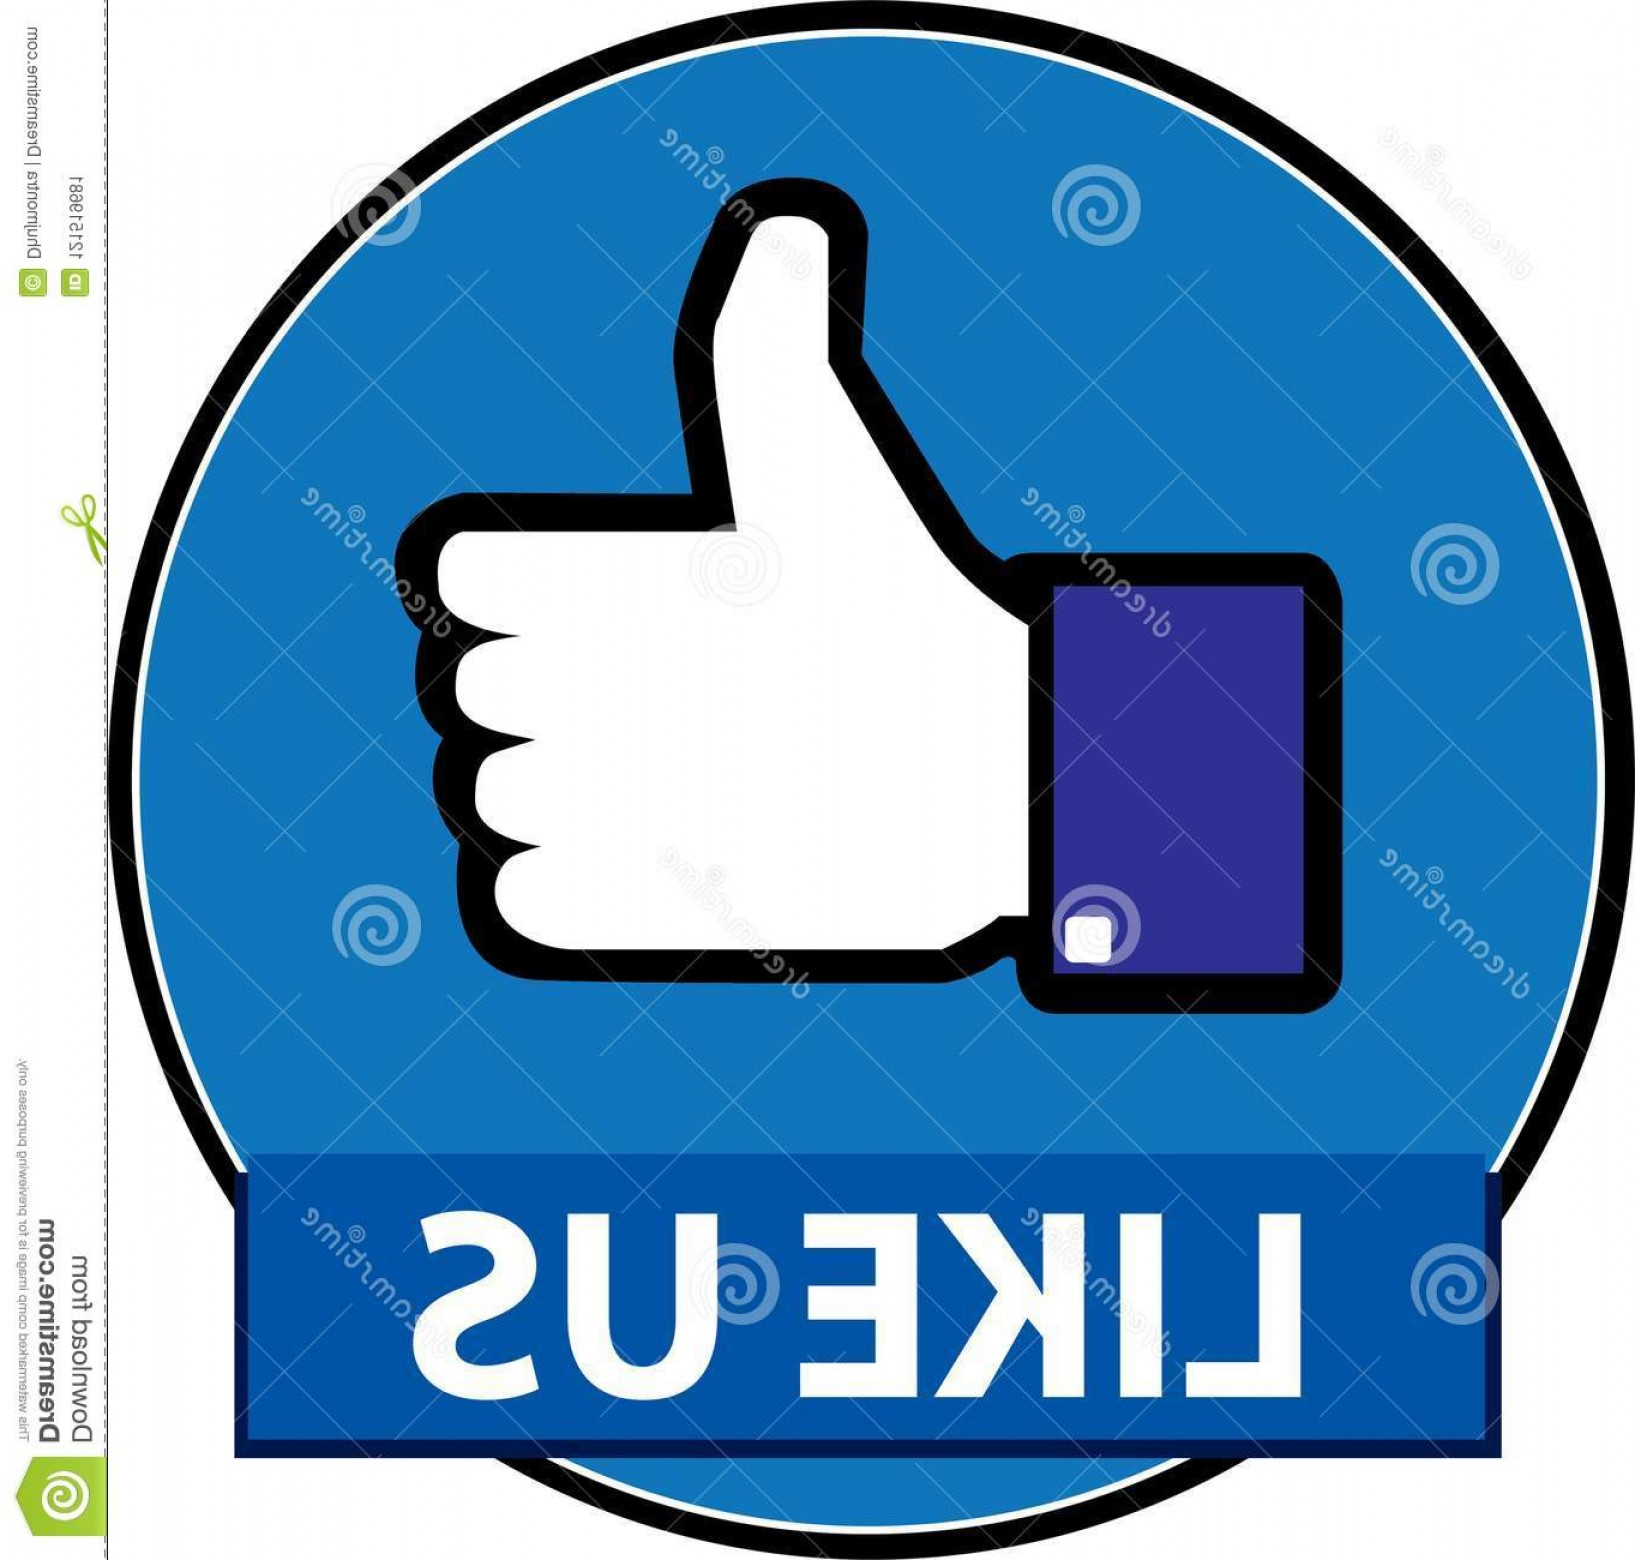 Finger Facebook Vector: Like Us Facebook Button Vector Isolated White Background Image